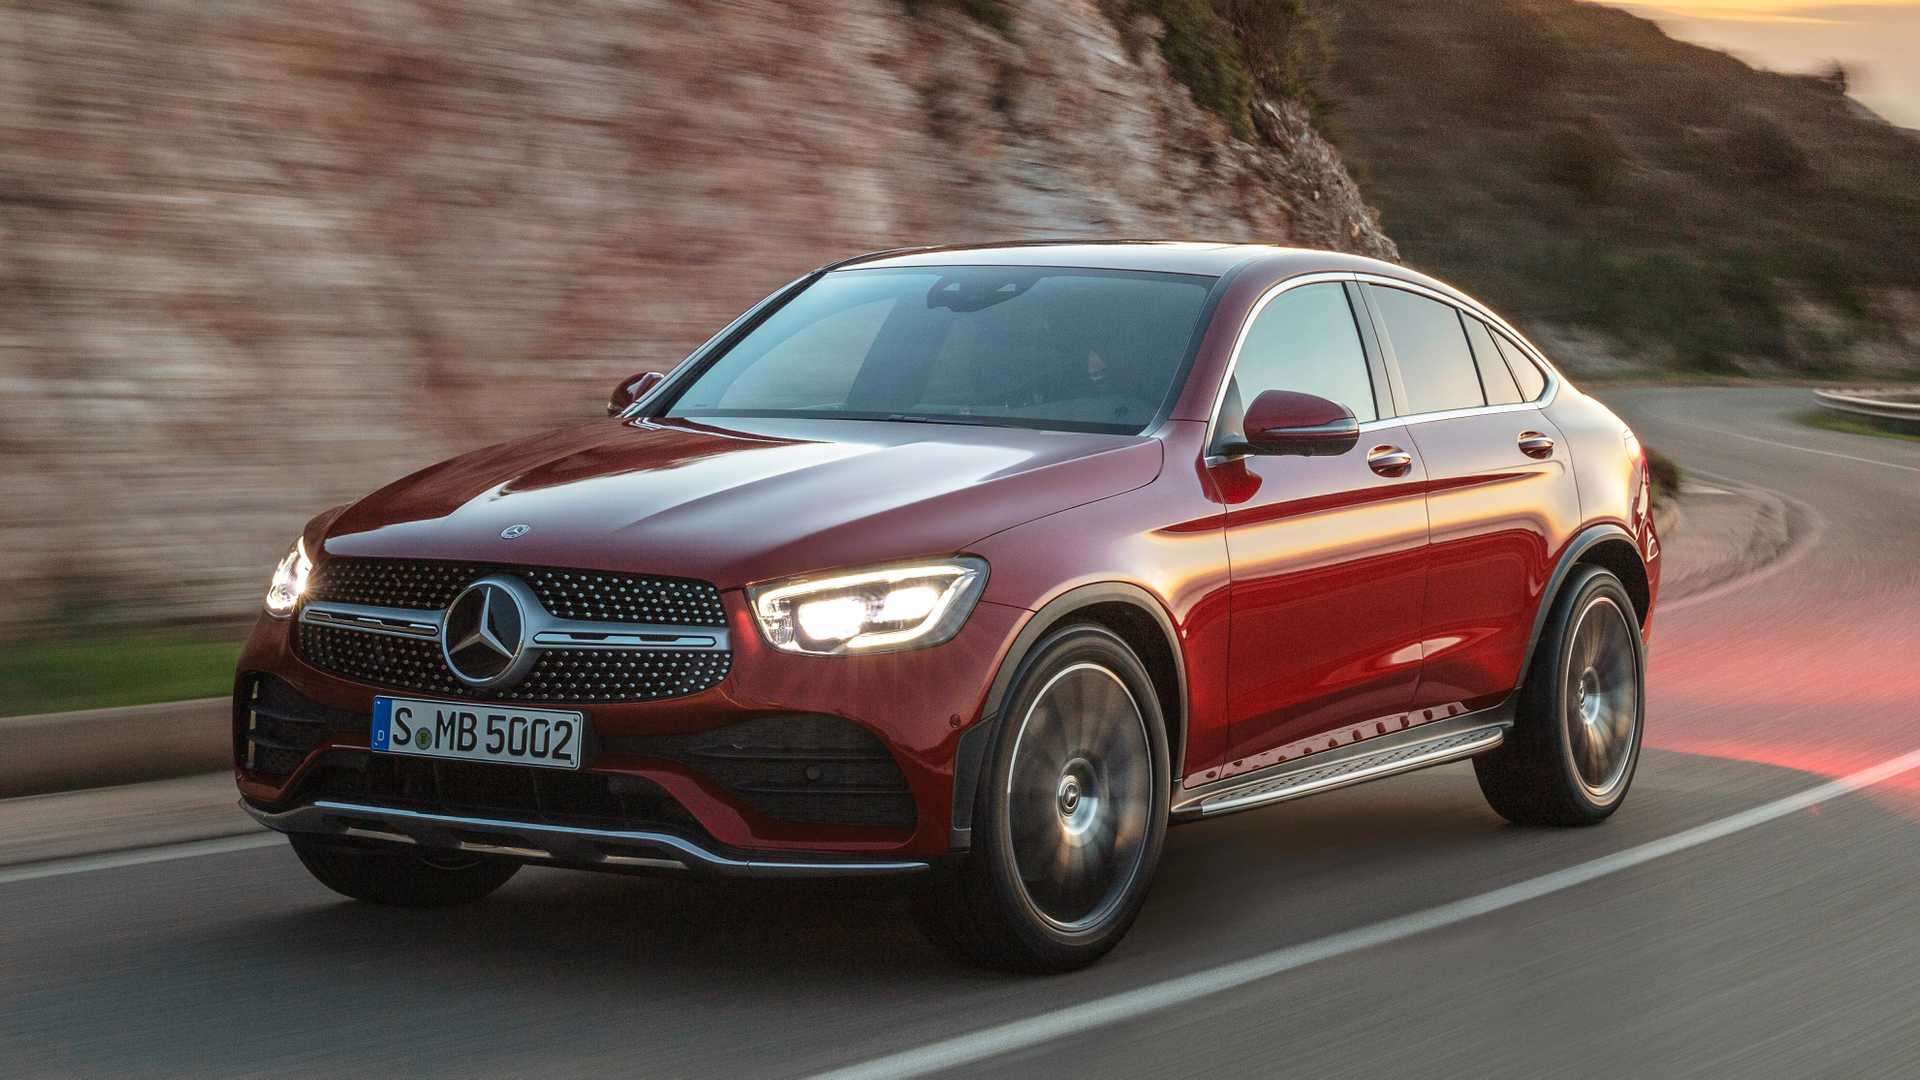 69 All New 2020 Mercedes Glc Price and Review